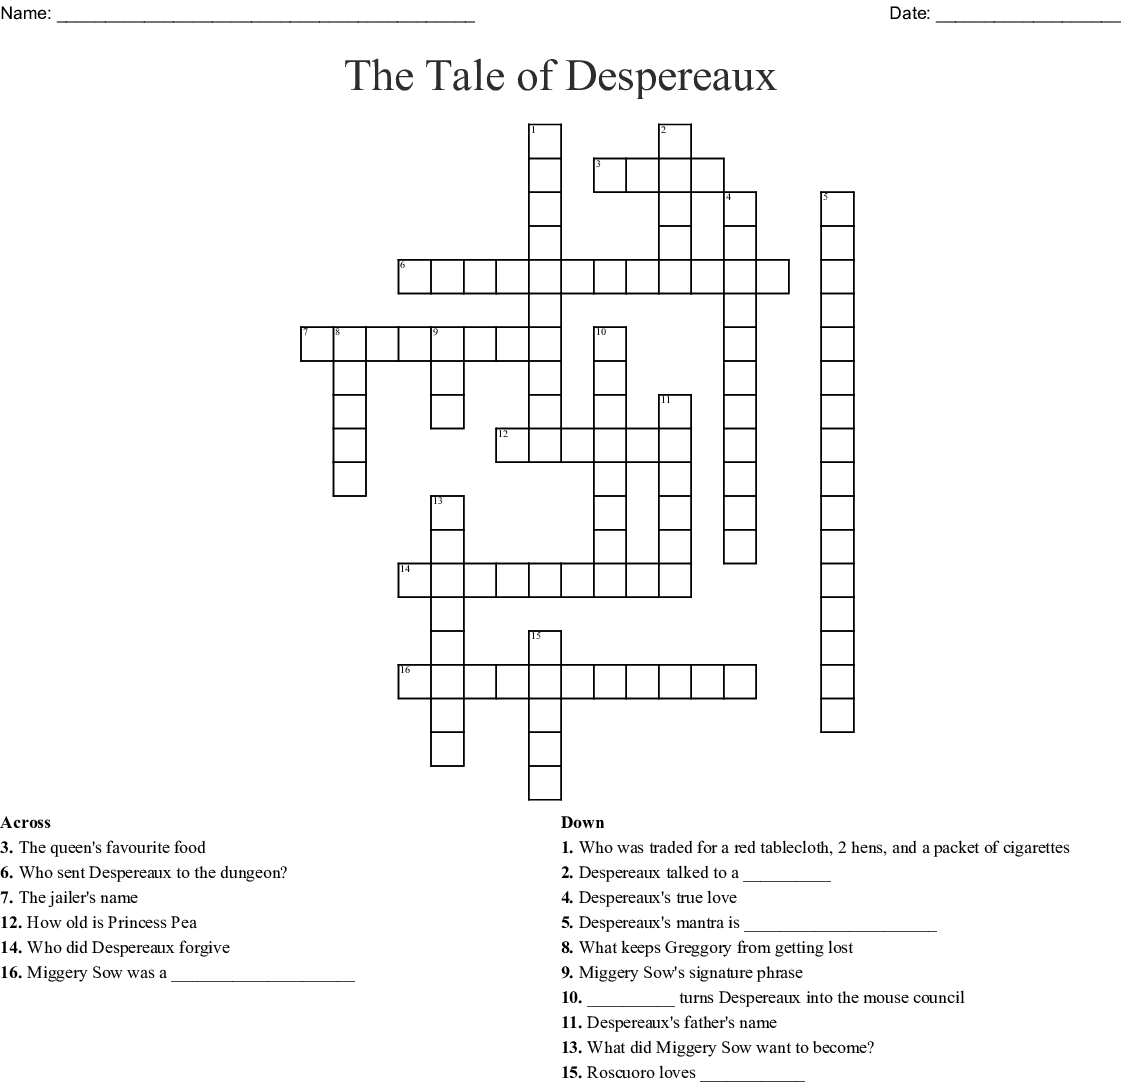 The Tale Of Despereaux Crossword